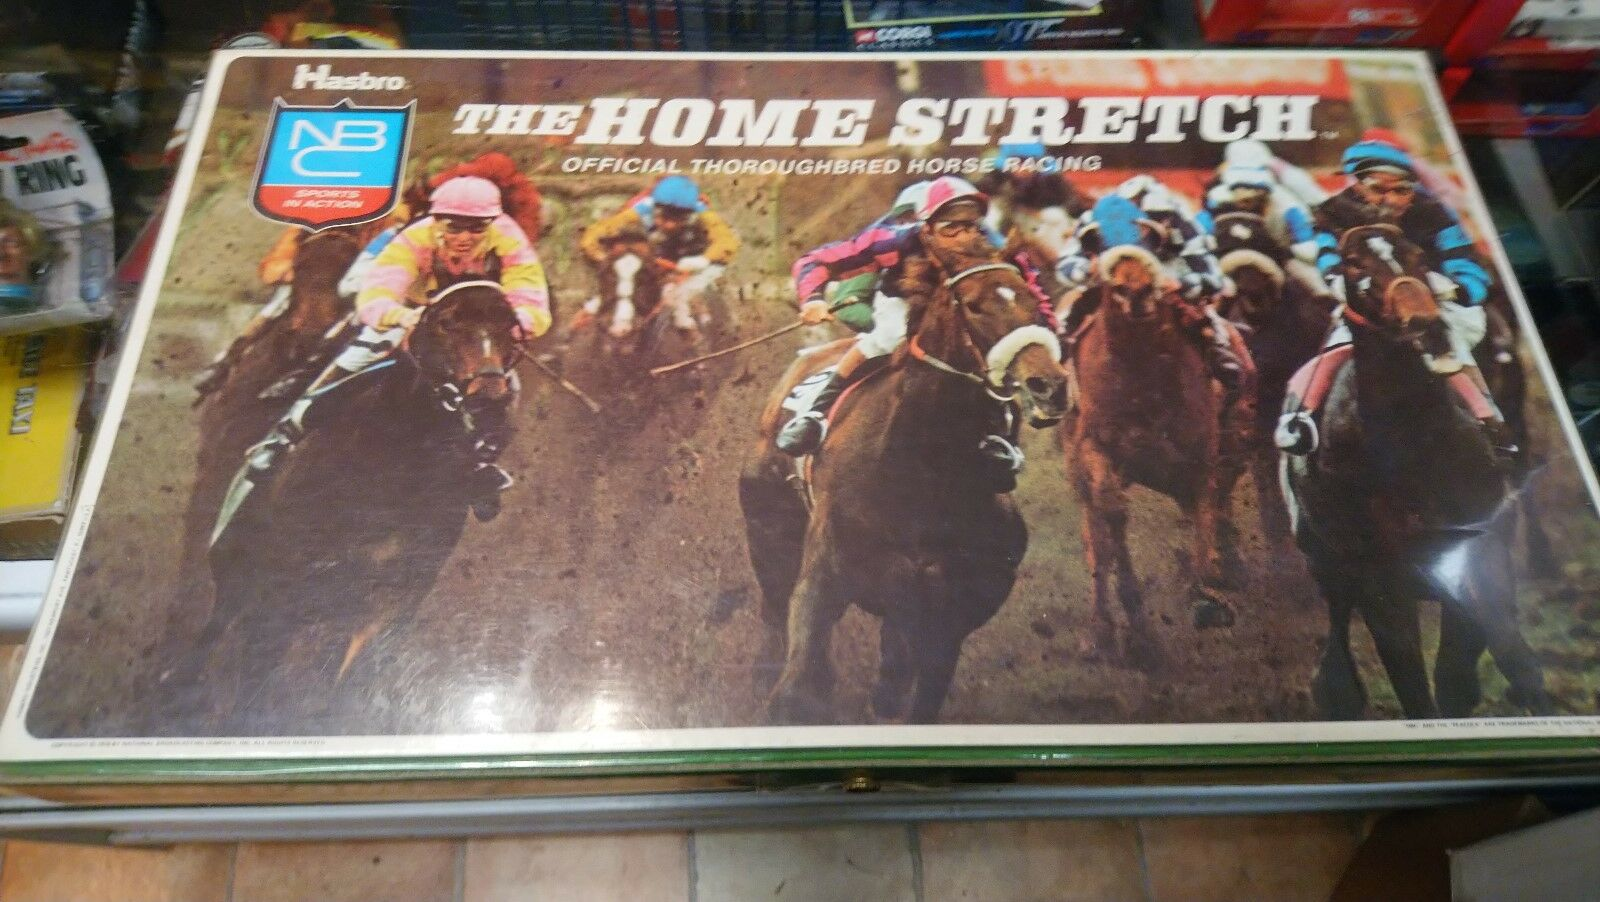 HASBRO THE HOME STRETCH HORSE RACING GAME.  BOARD GAME . FROM 1975